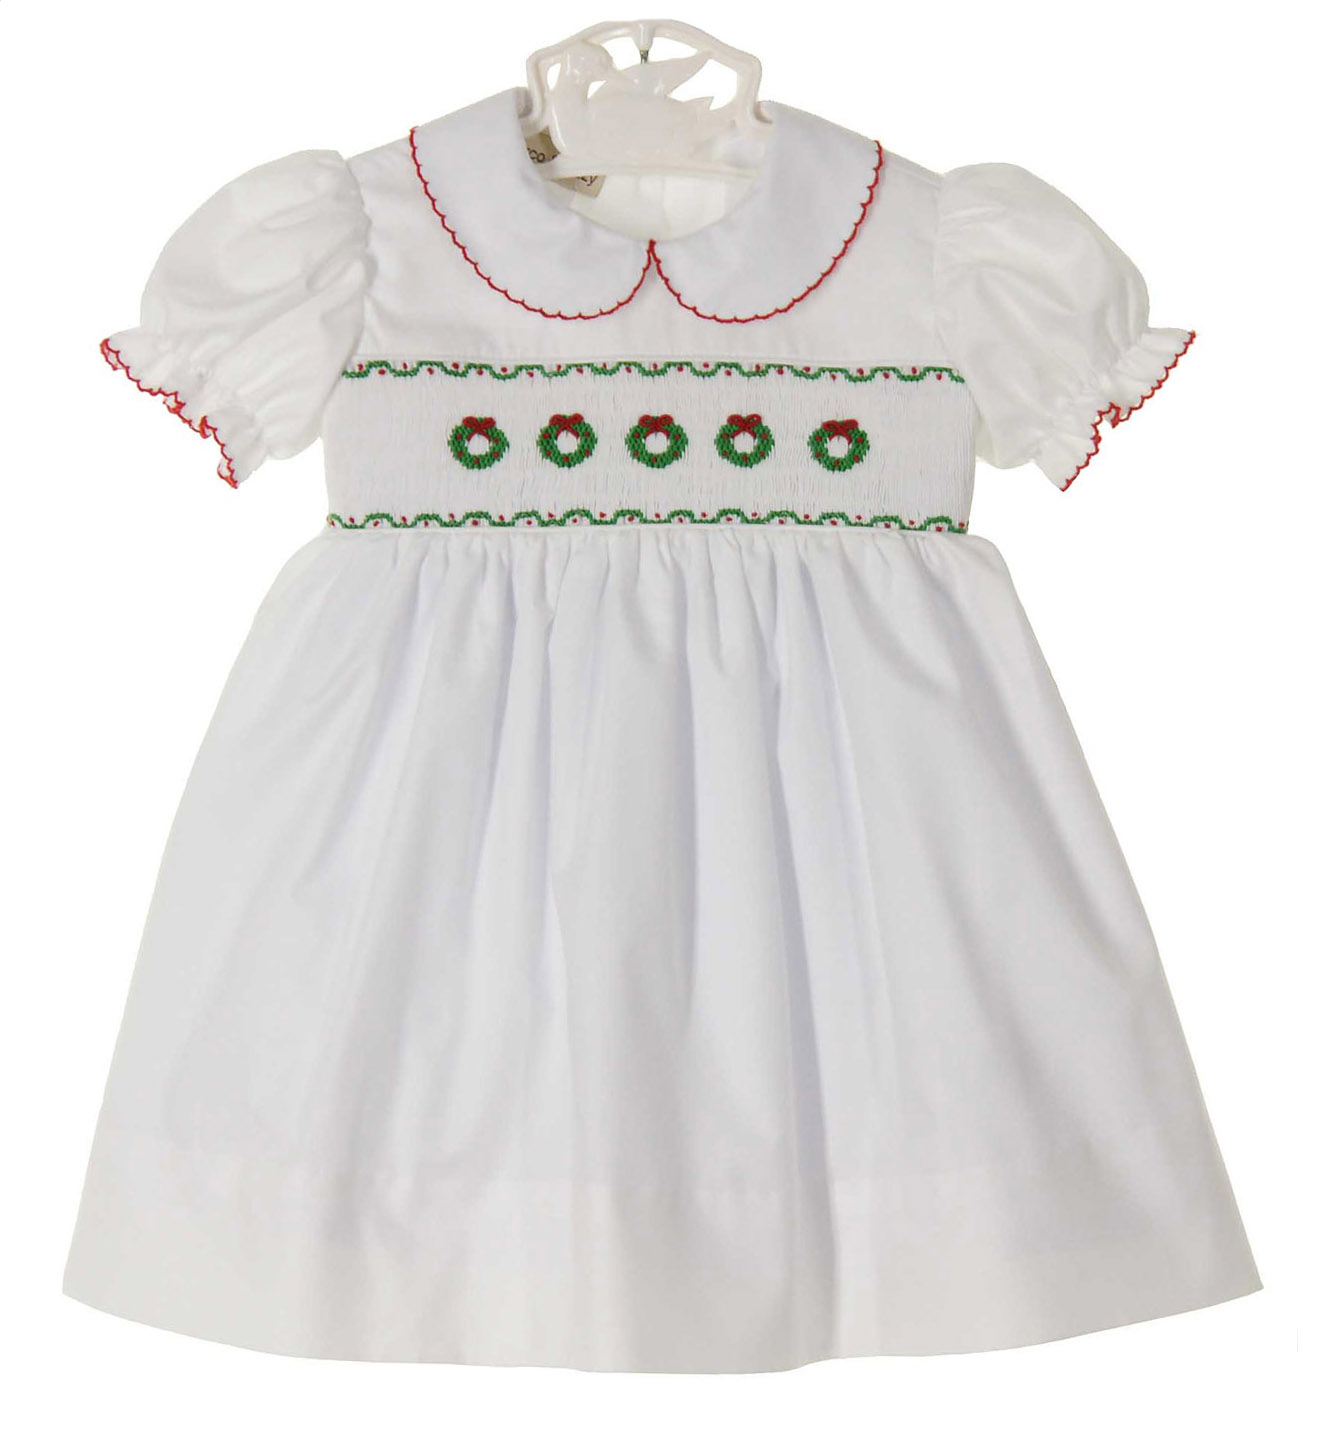 04c7320939573 Marco& Lizzy white smocked dress with embroidered wreaths,white ...